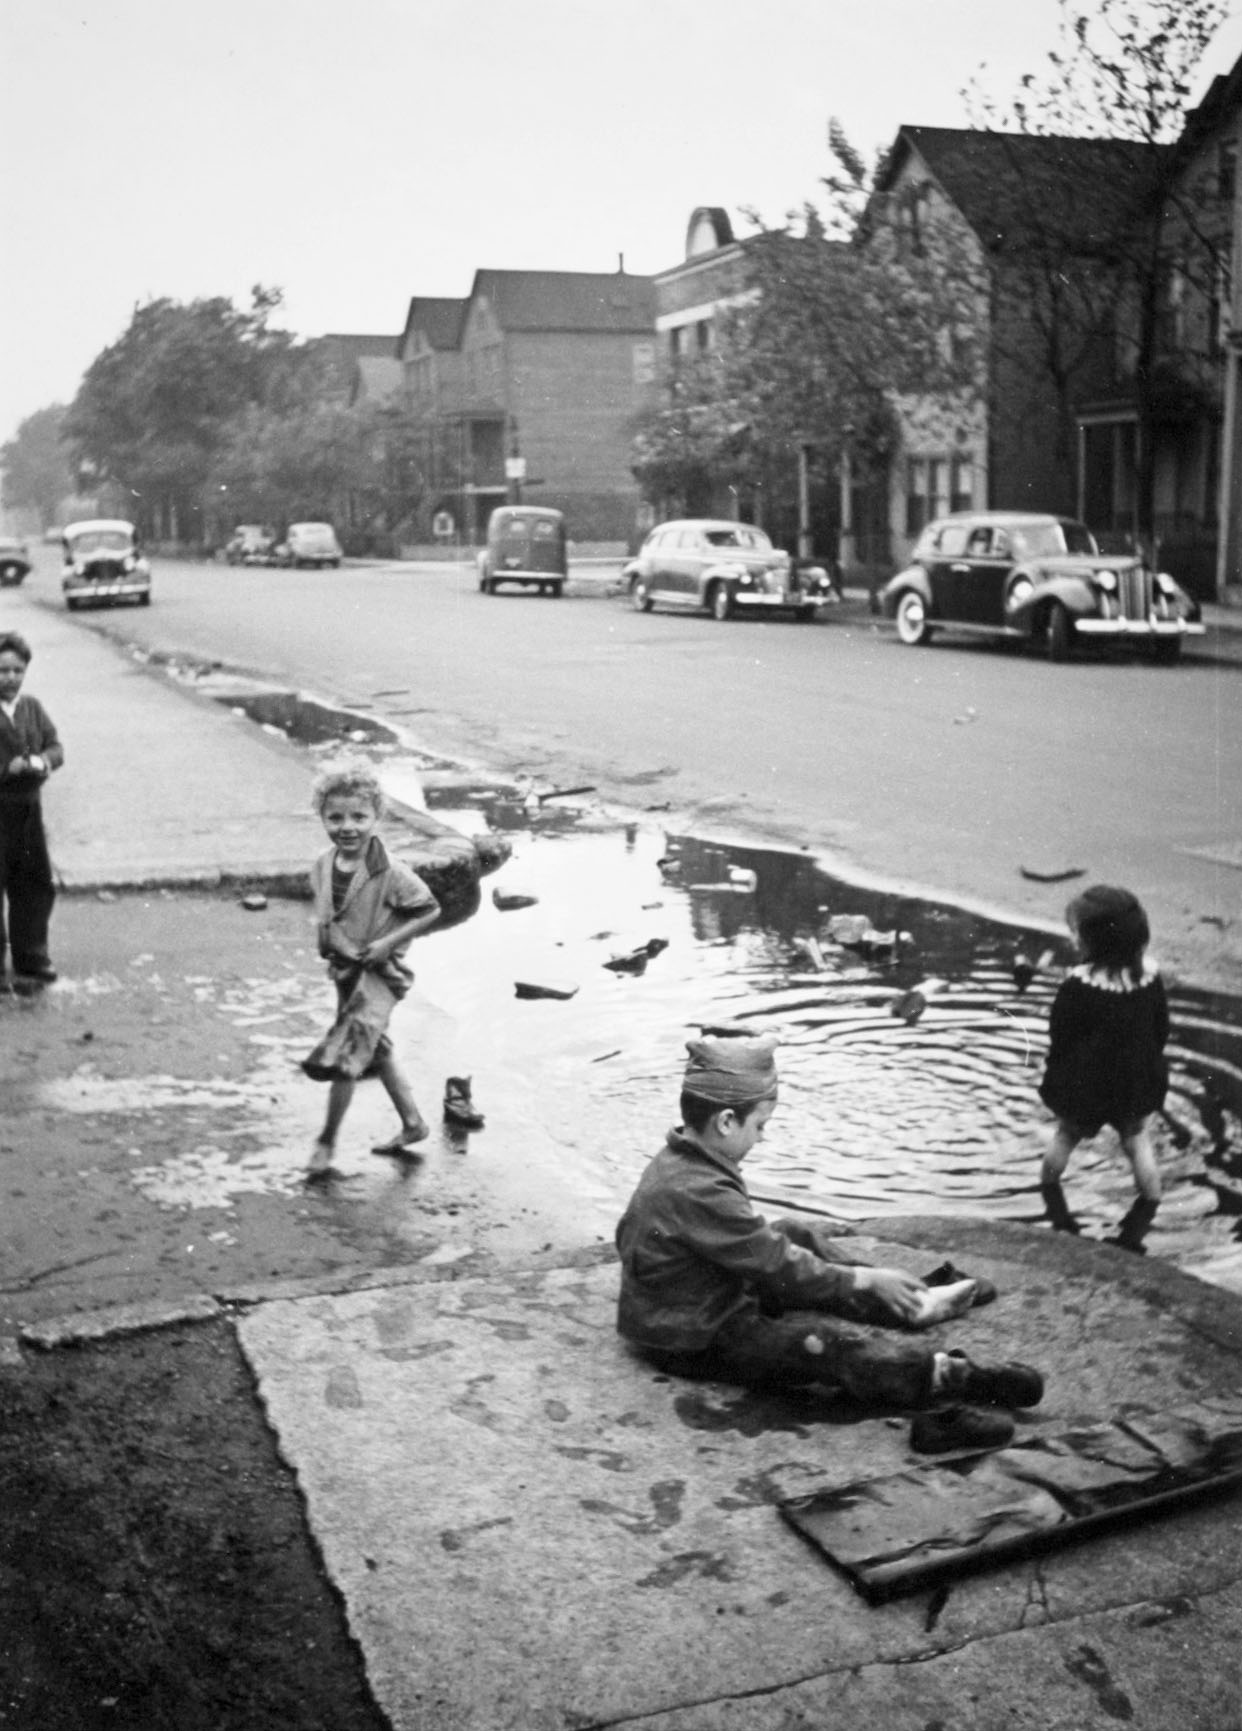 Children Playing in a Puddle